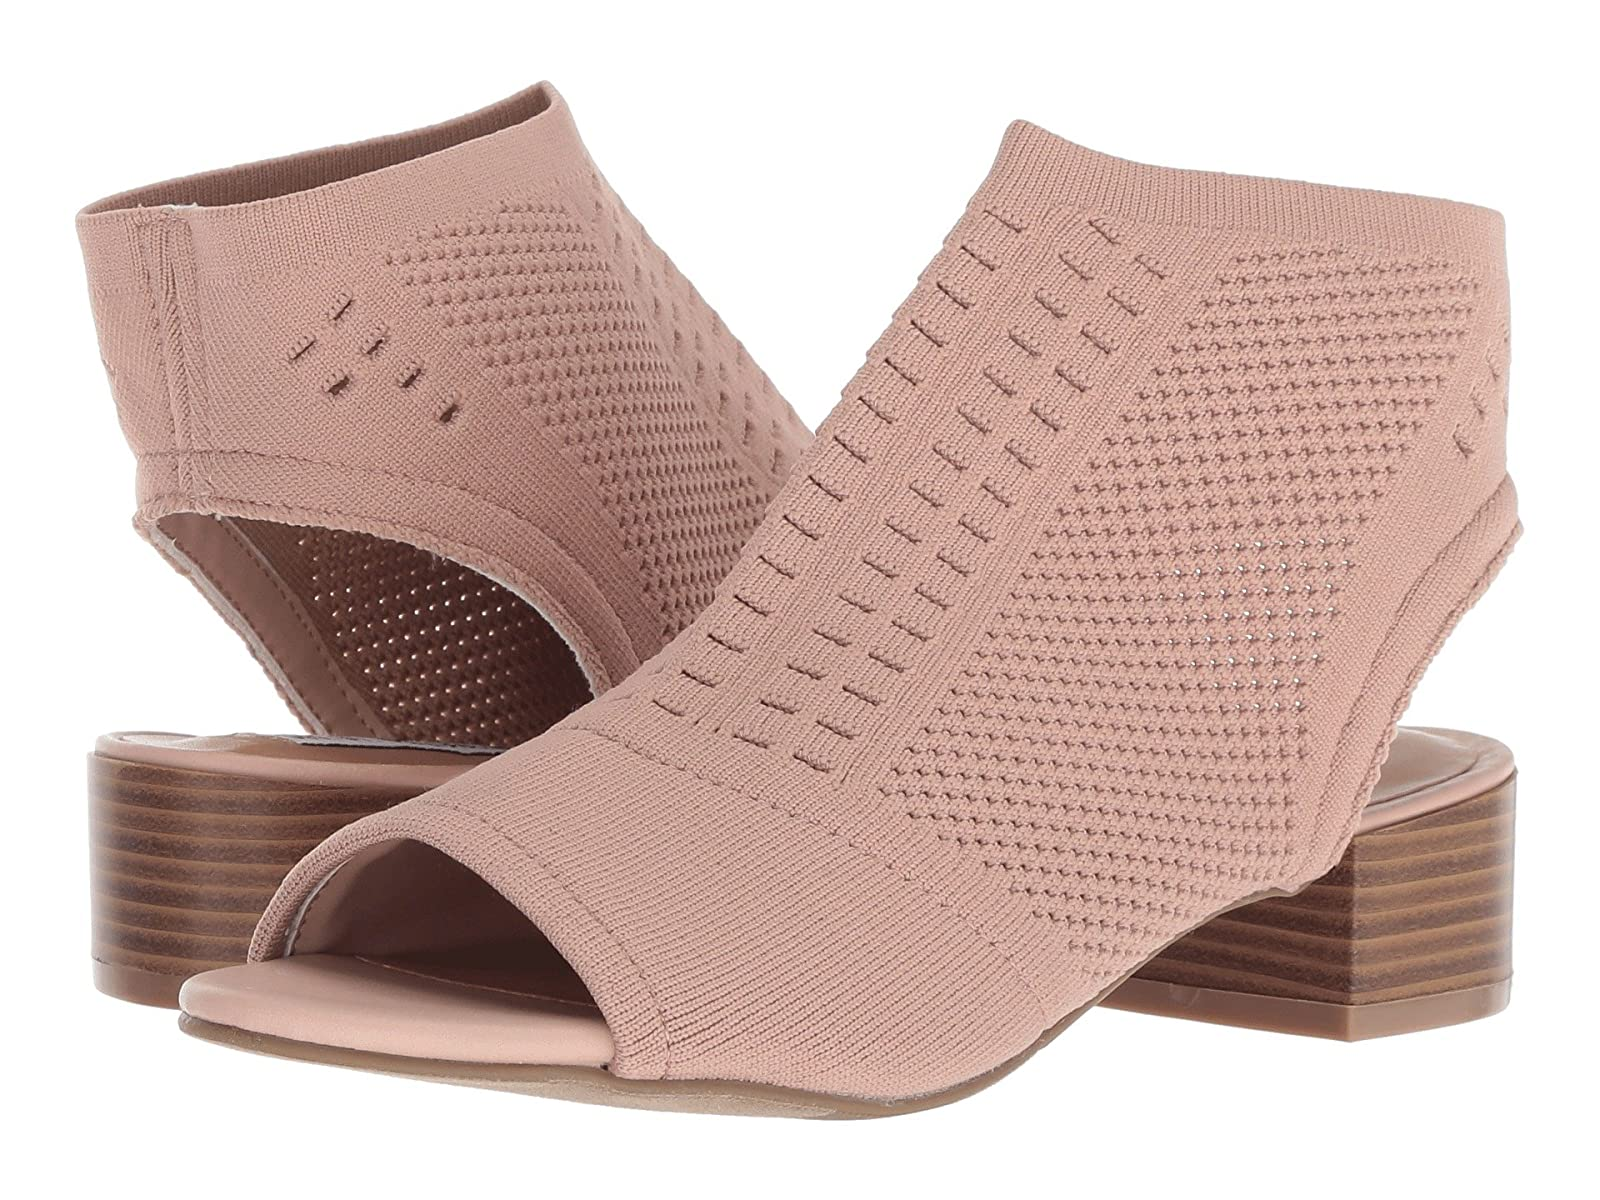 Steve Madden Kids Jevers (Little Kid/Big Kid)Atmospheric grades have affordable shoes